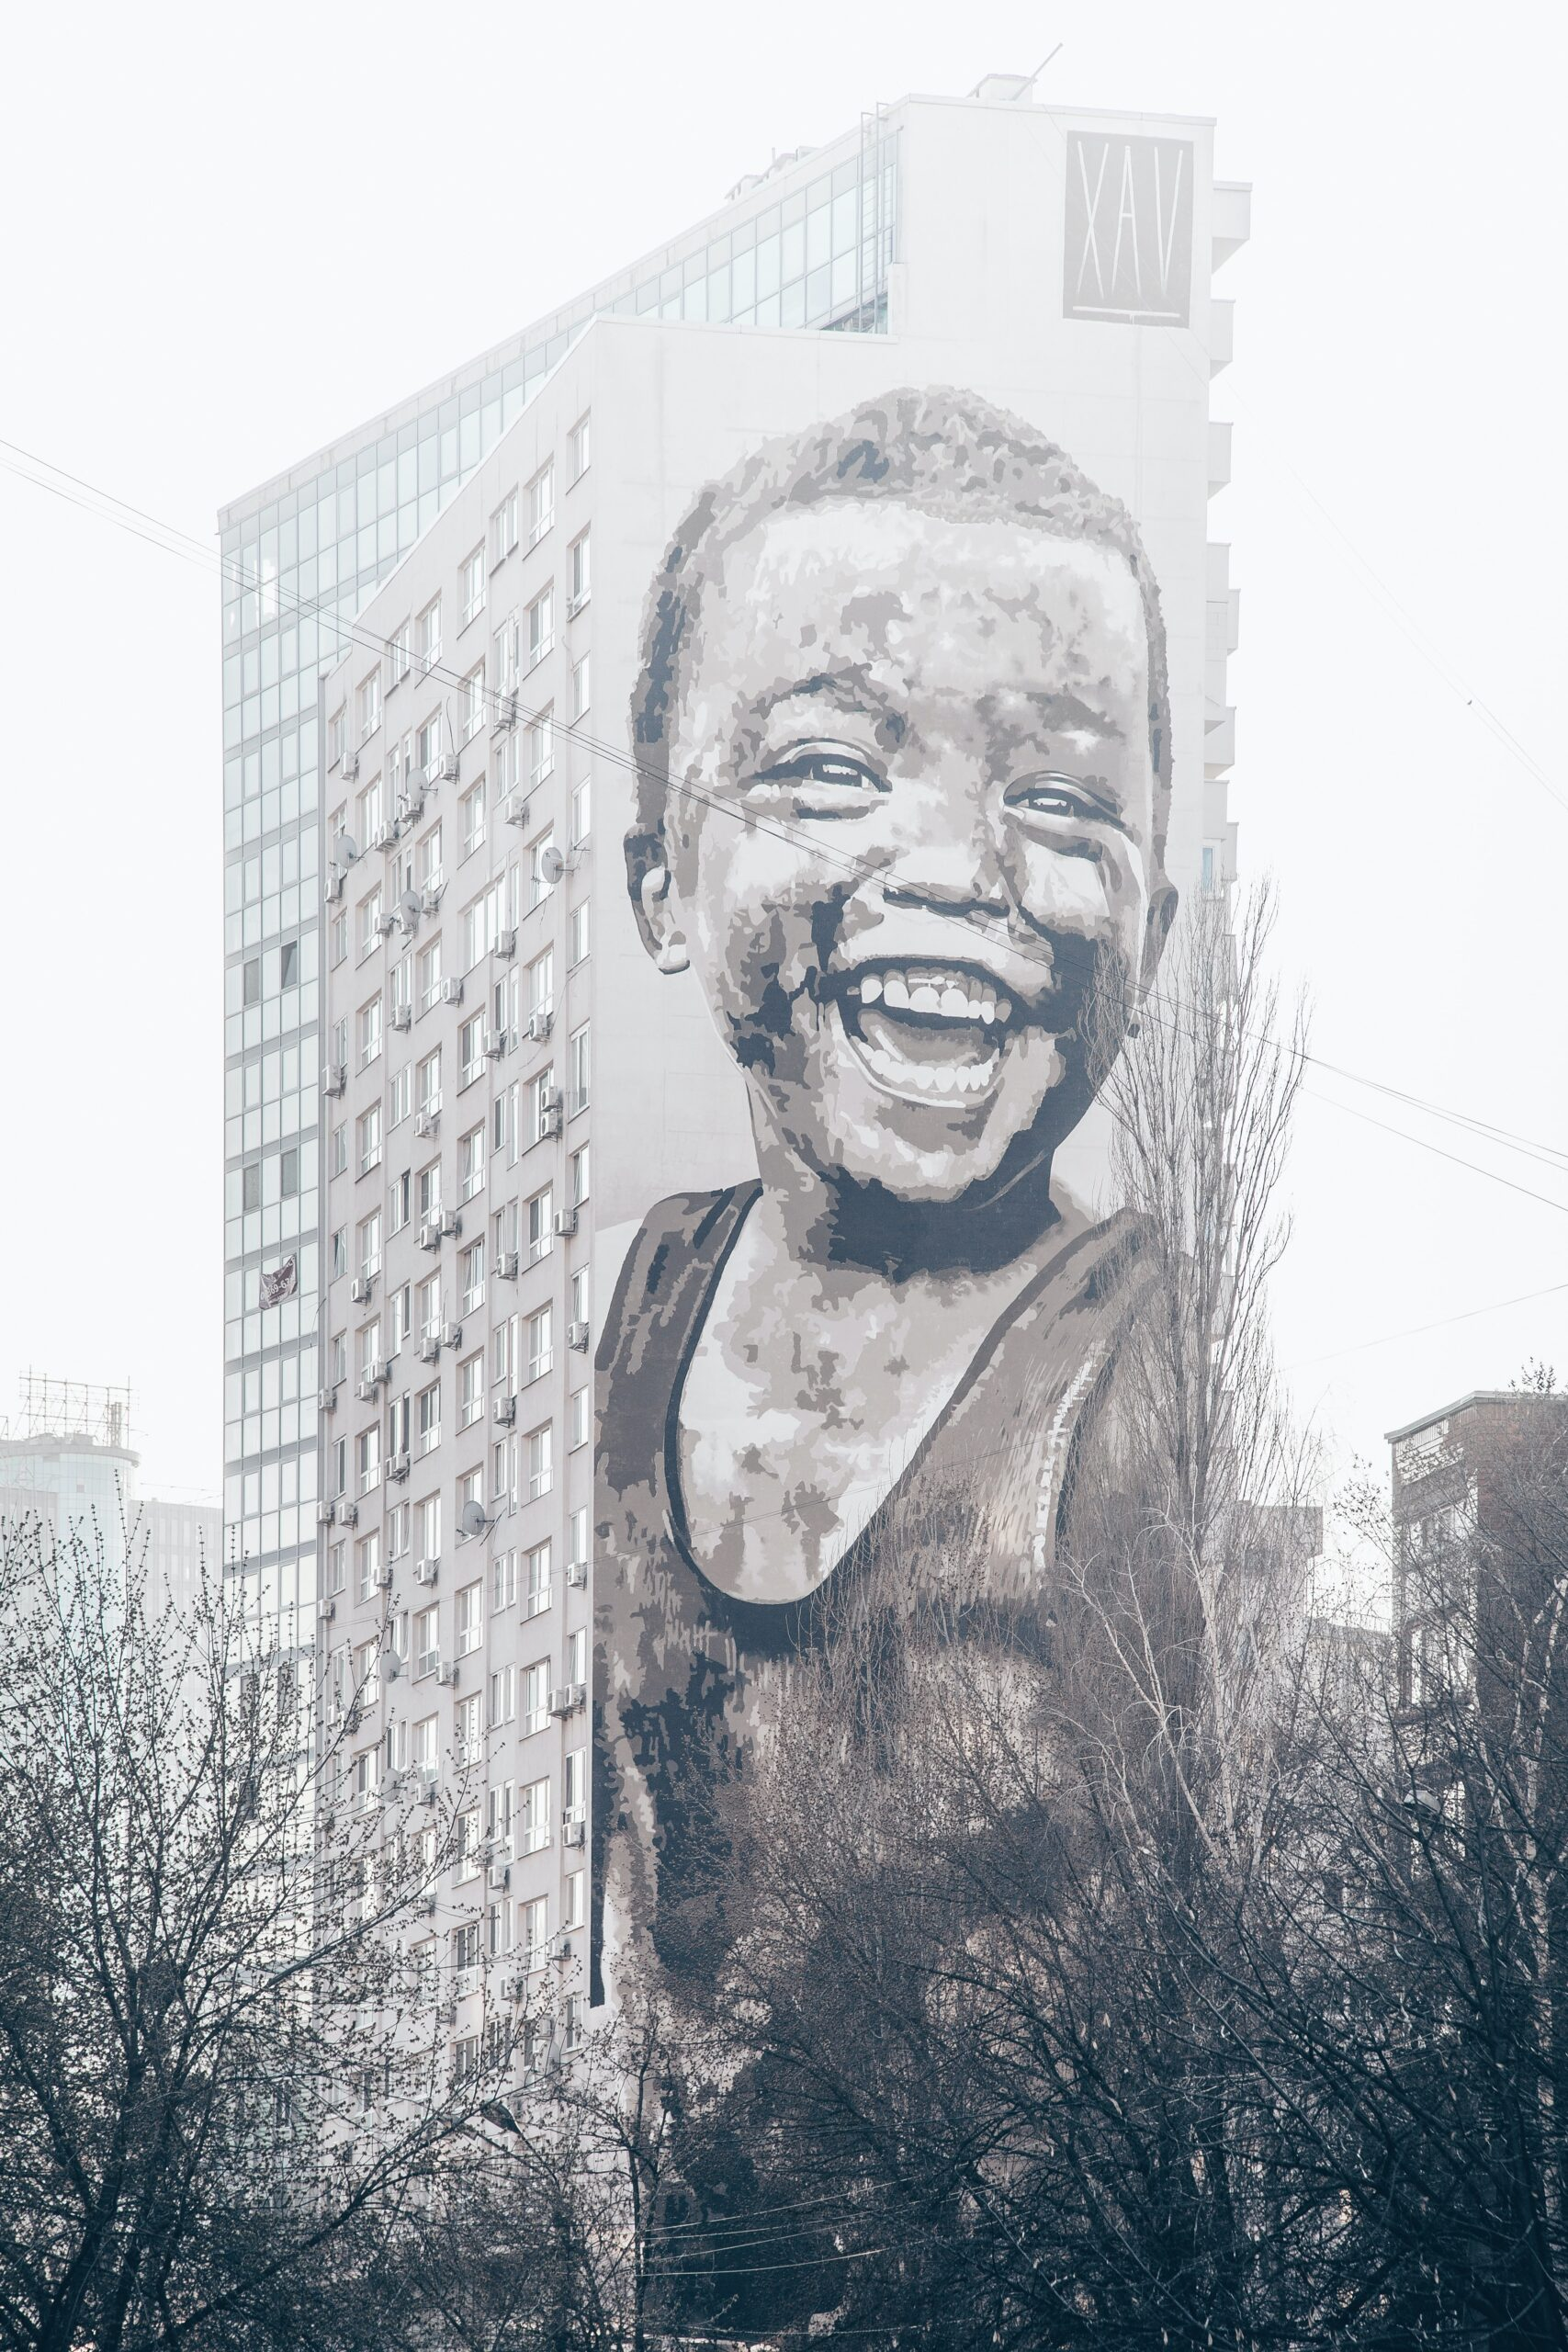 Mural on side of building of young boy smiling by Marja Murd from Unsplash